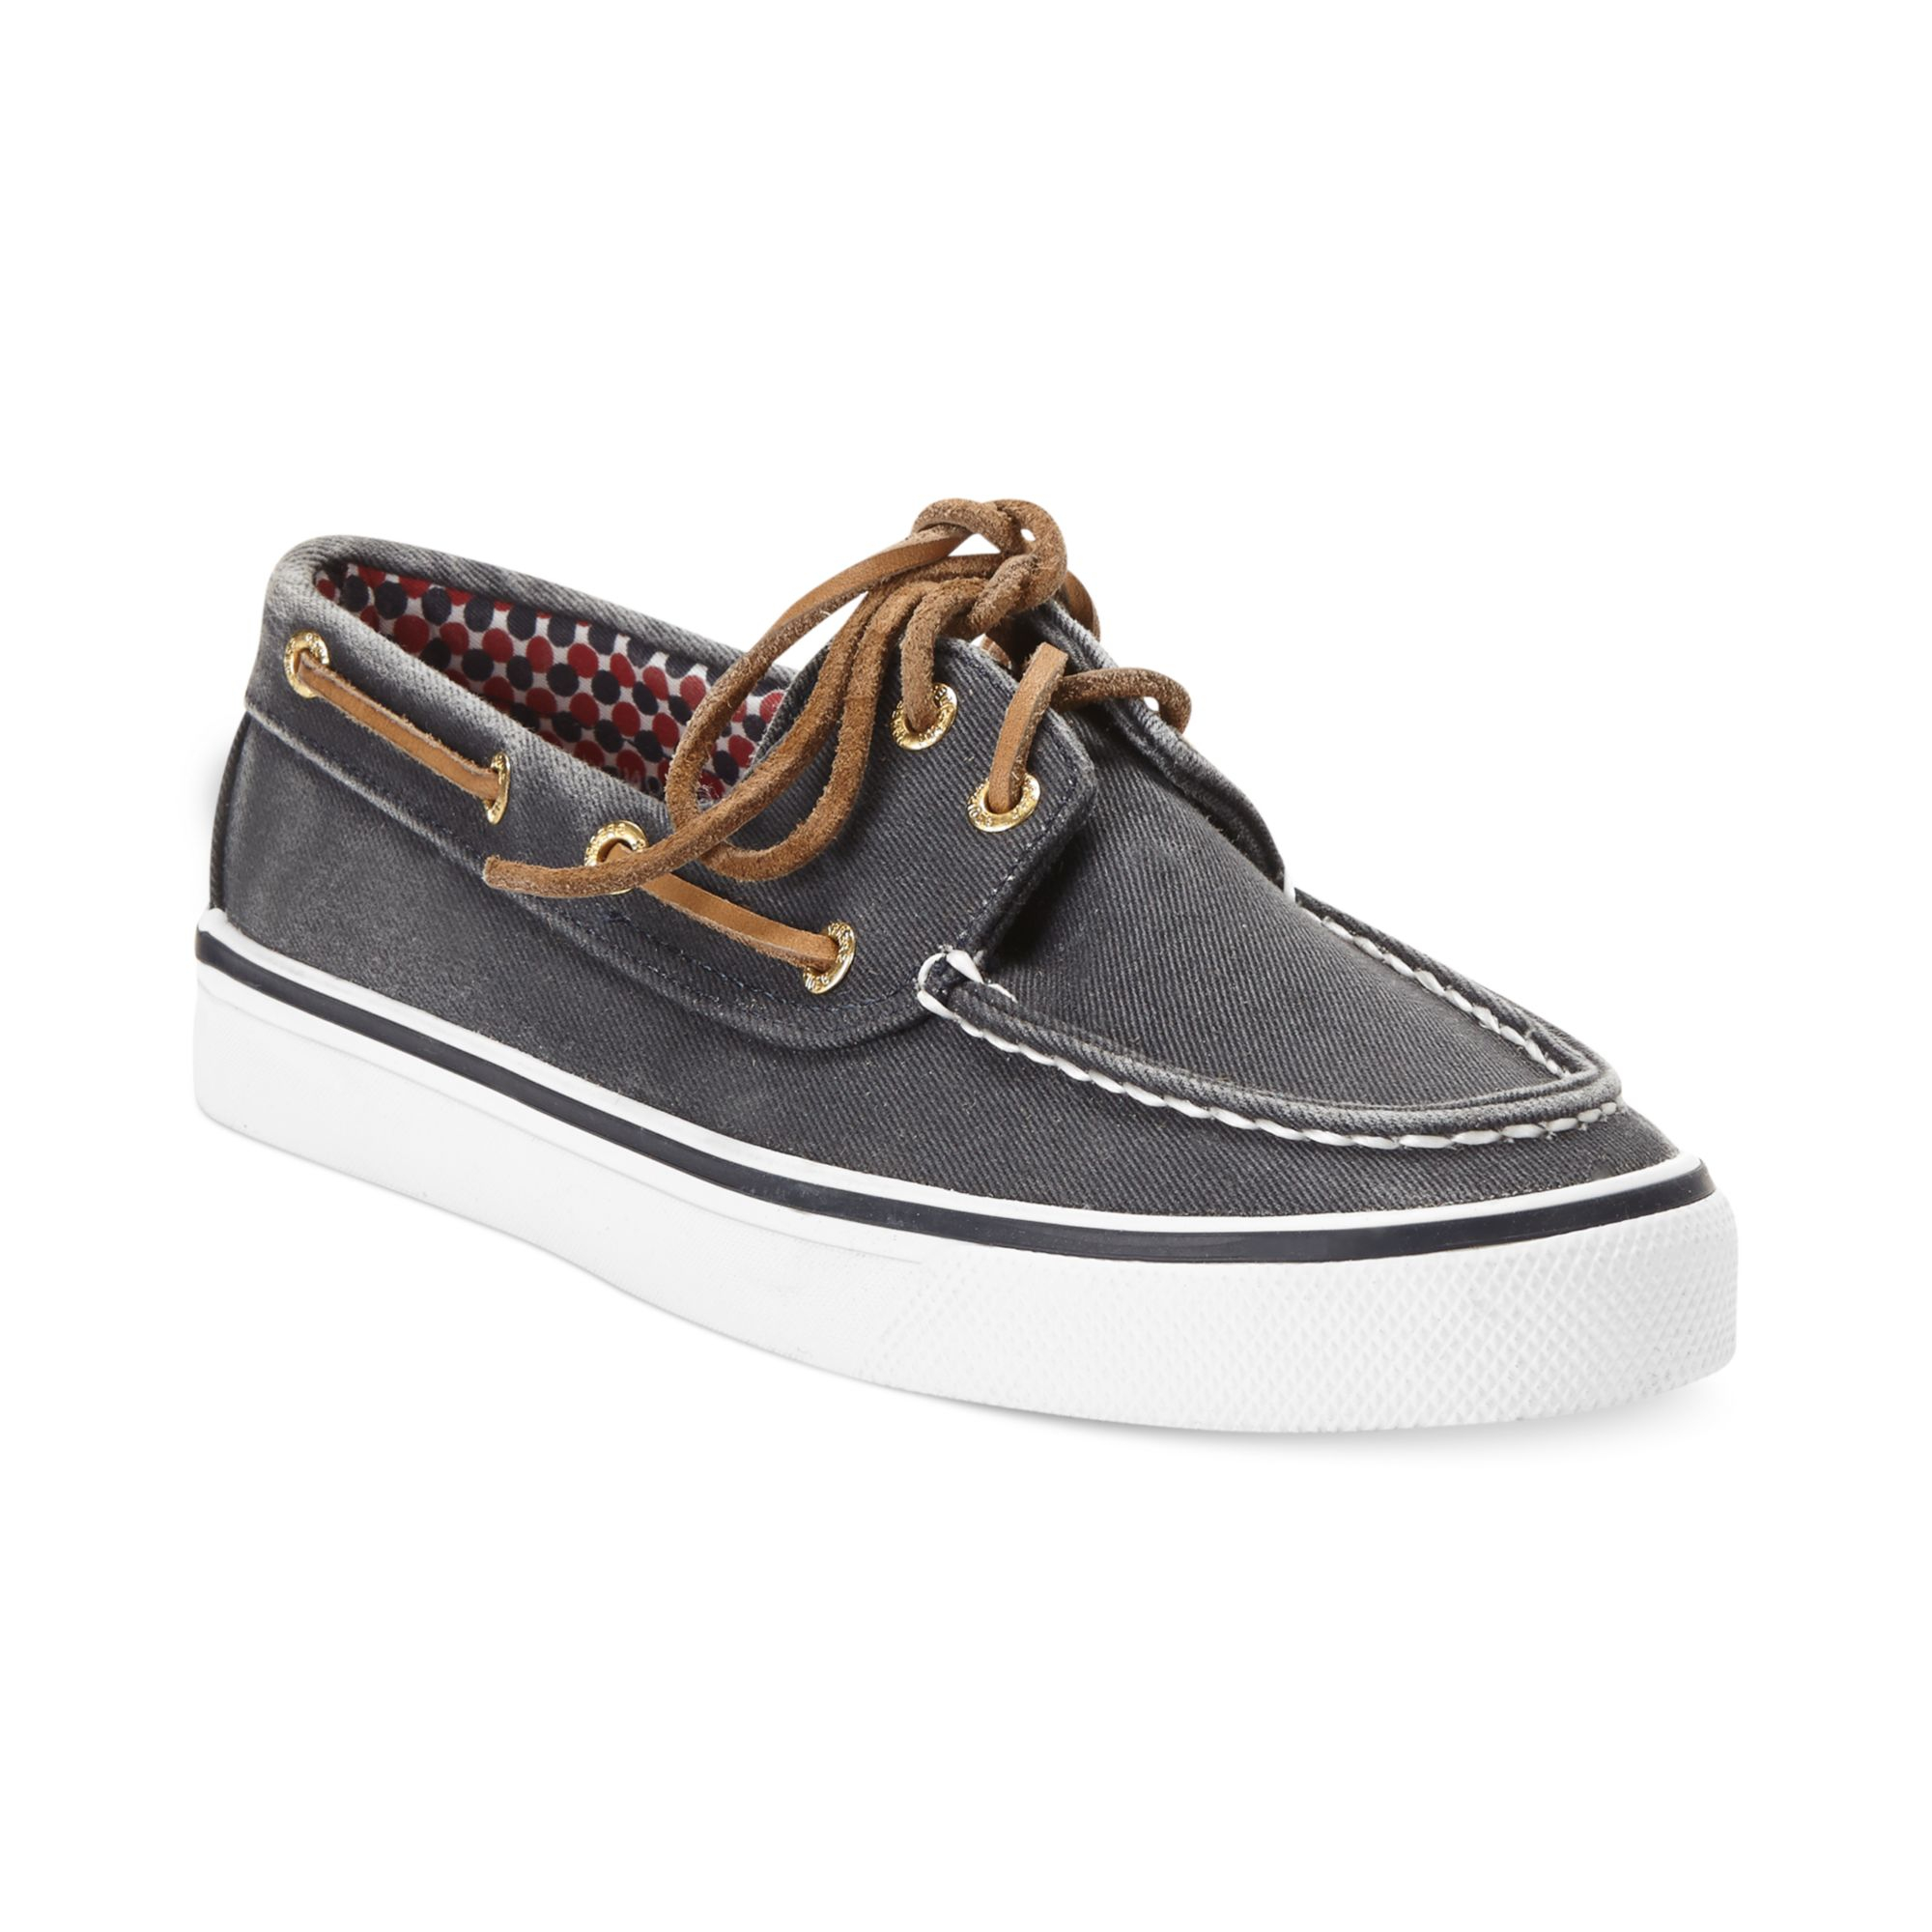 sperry top sider womens bahama boat shoes in gray grey